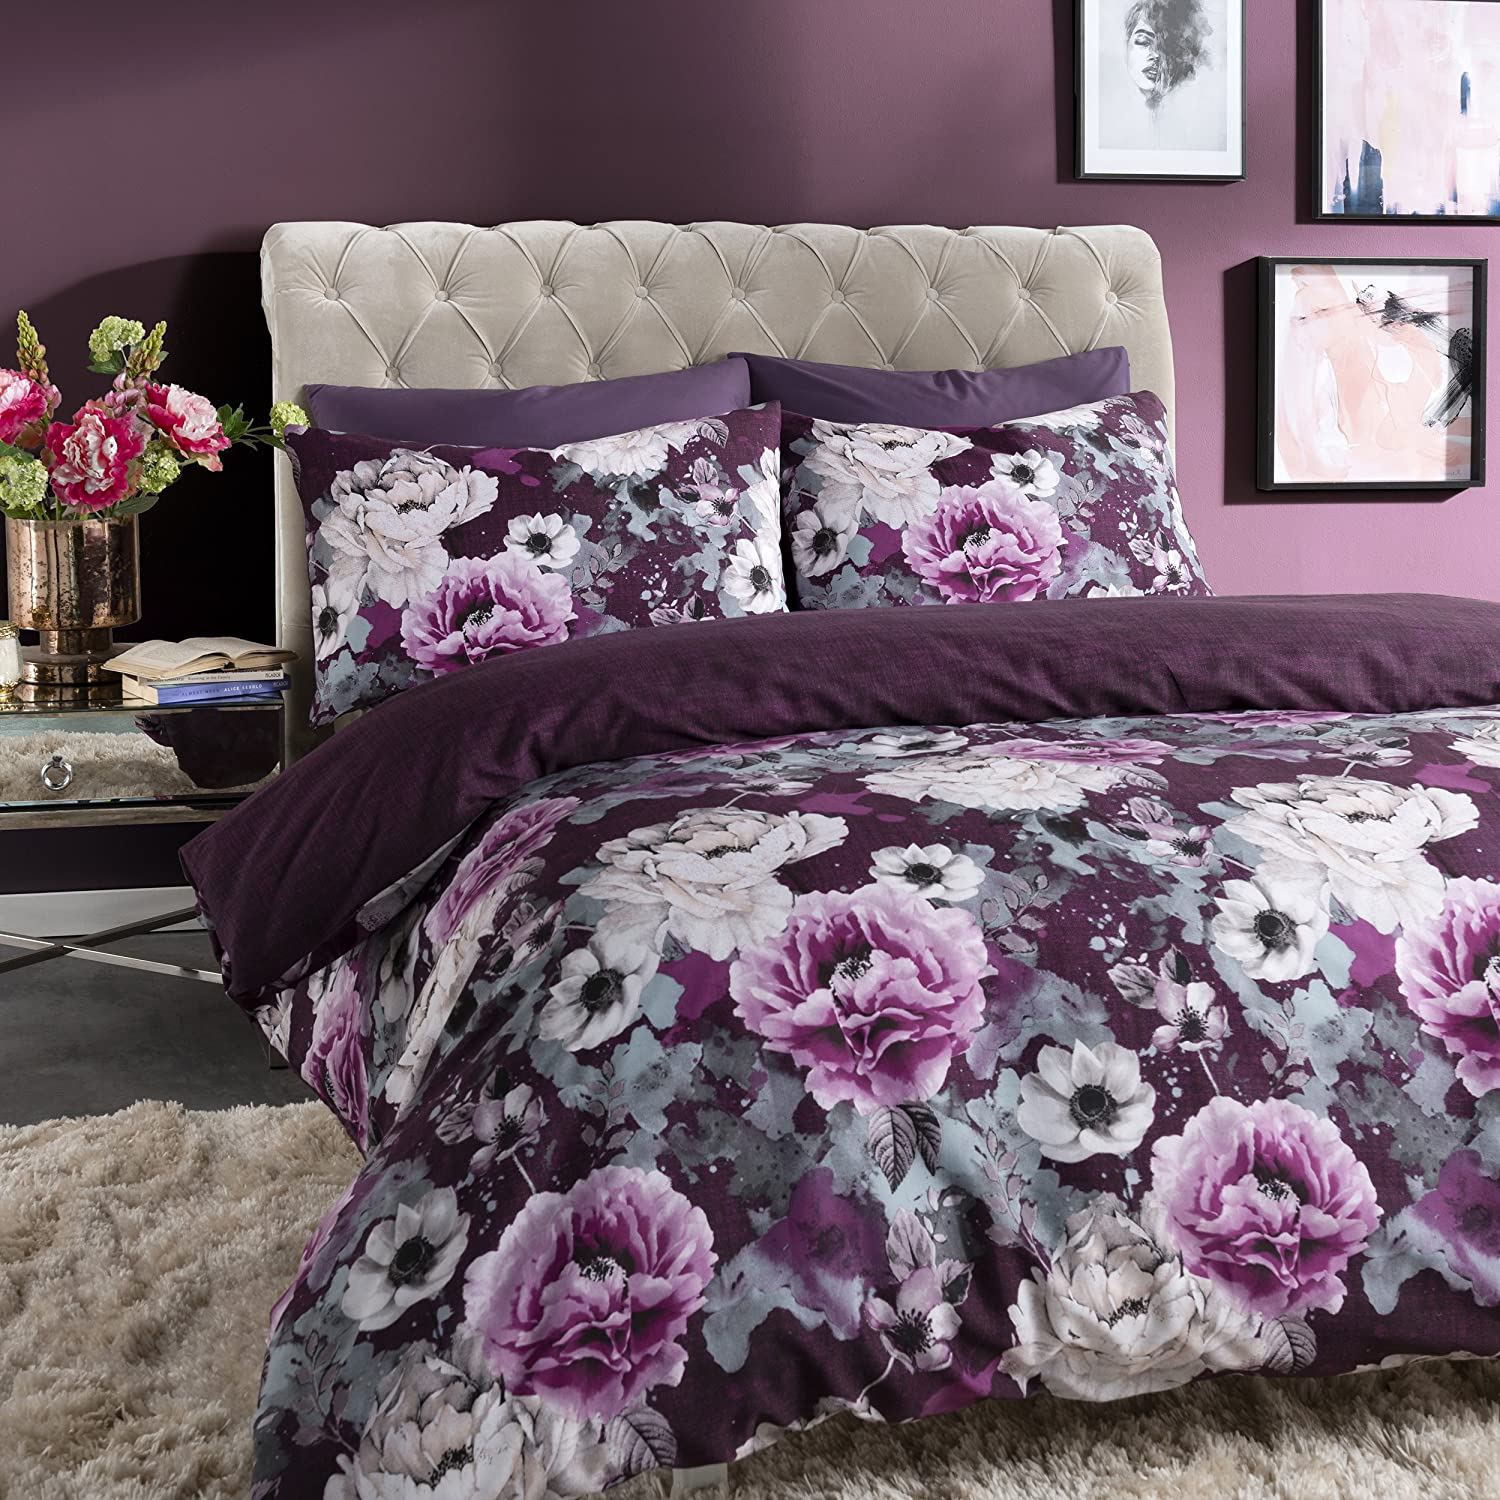 Inky Floral Luxurious Duvet Covers Quilt Covers Reversible Bedding Sets Pieridae